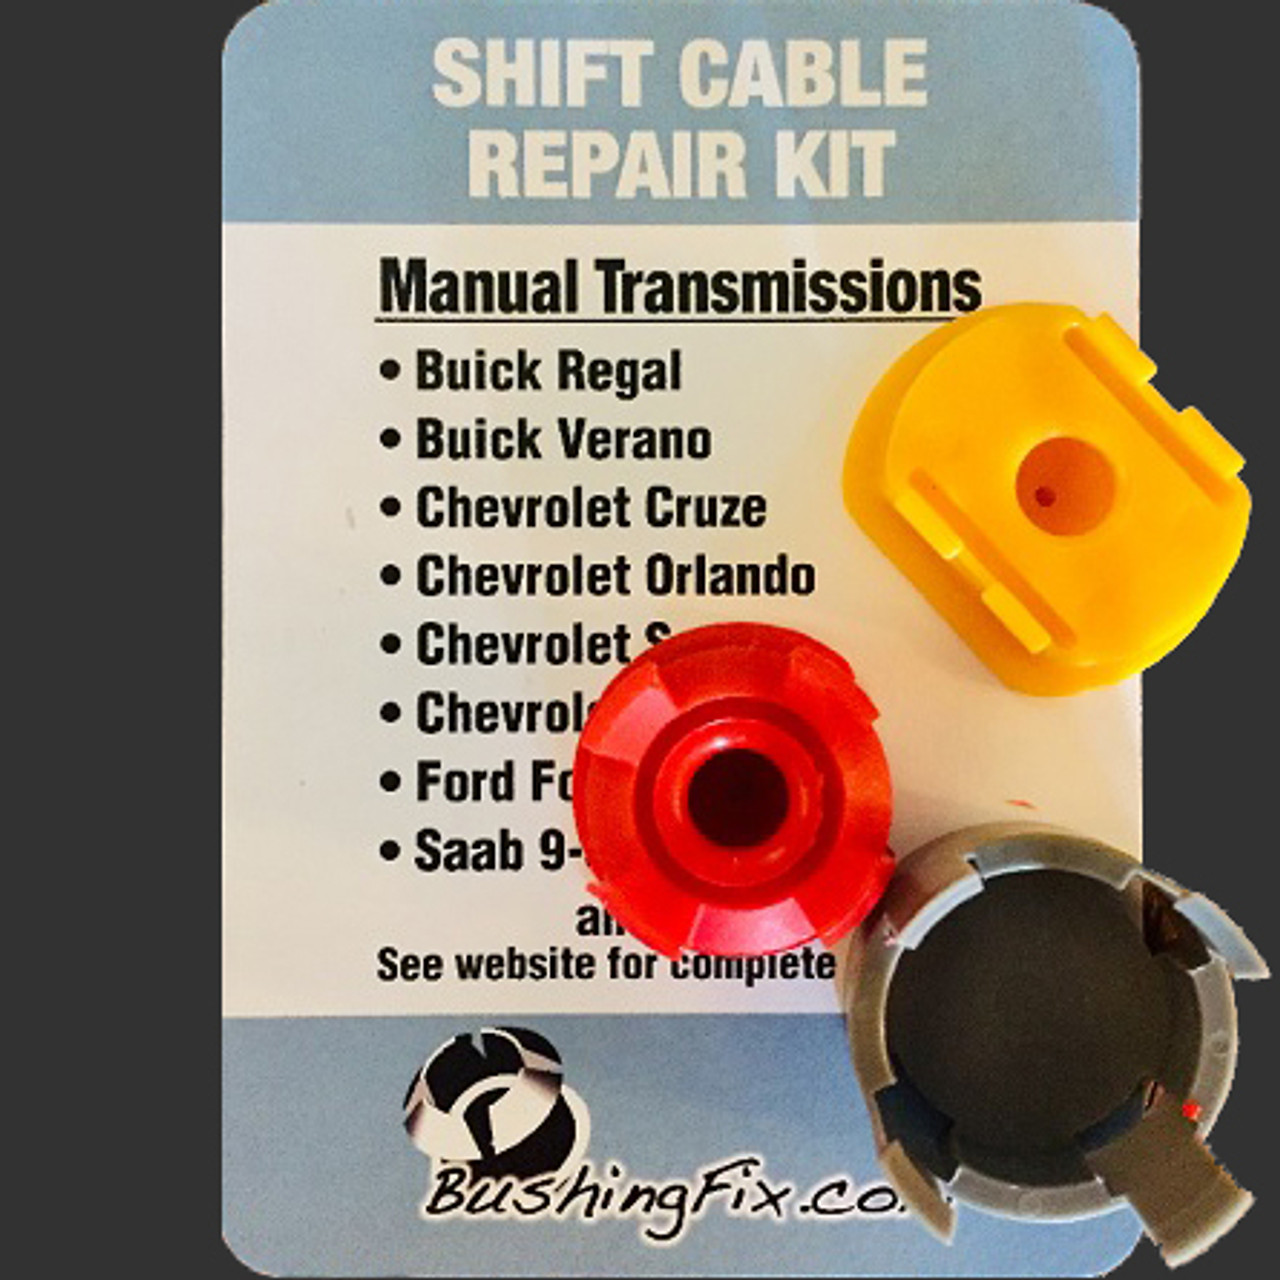 Chevrolet Sonic manual transmission shift cable repair includes easy installation replacement bushing one for each of the different style of cable end shape round or oblong.